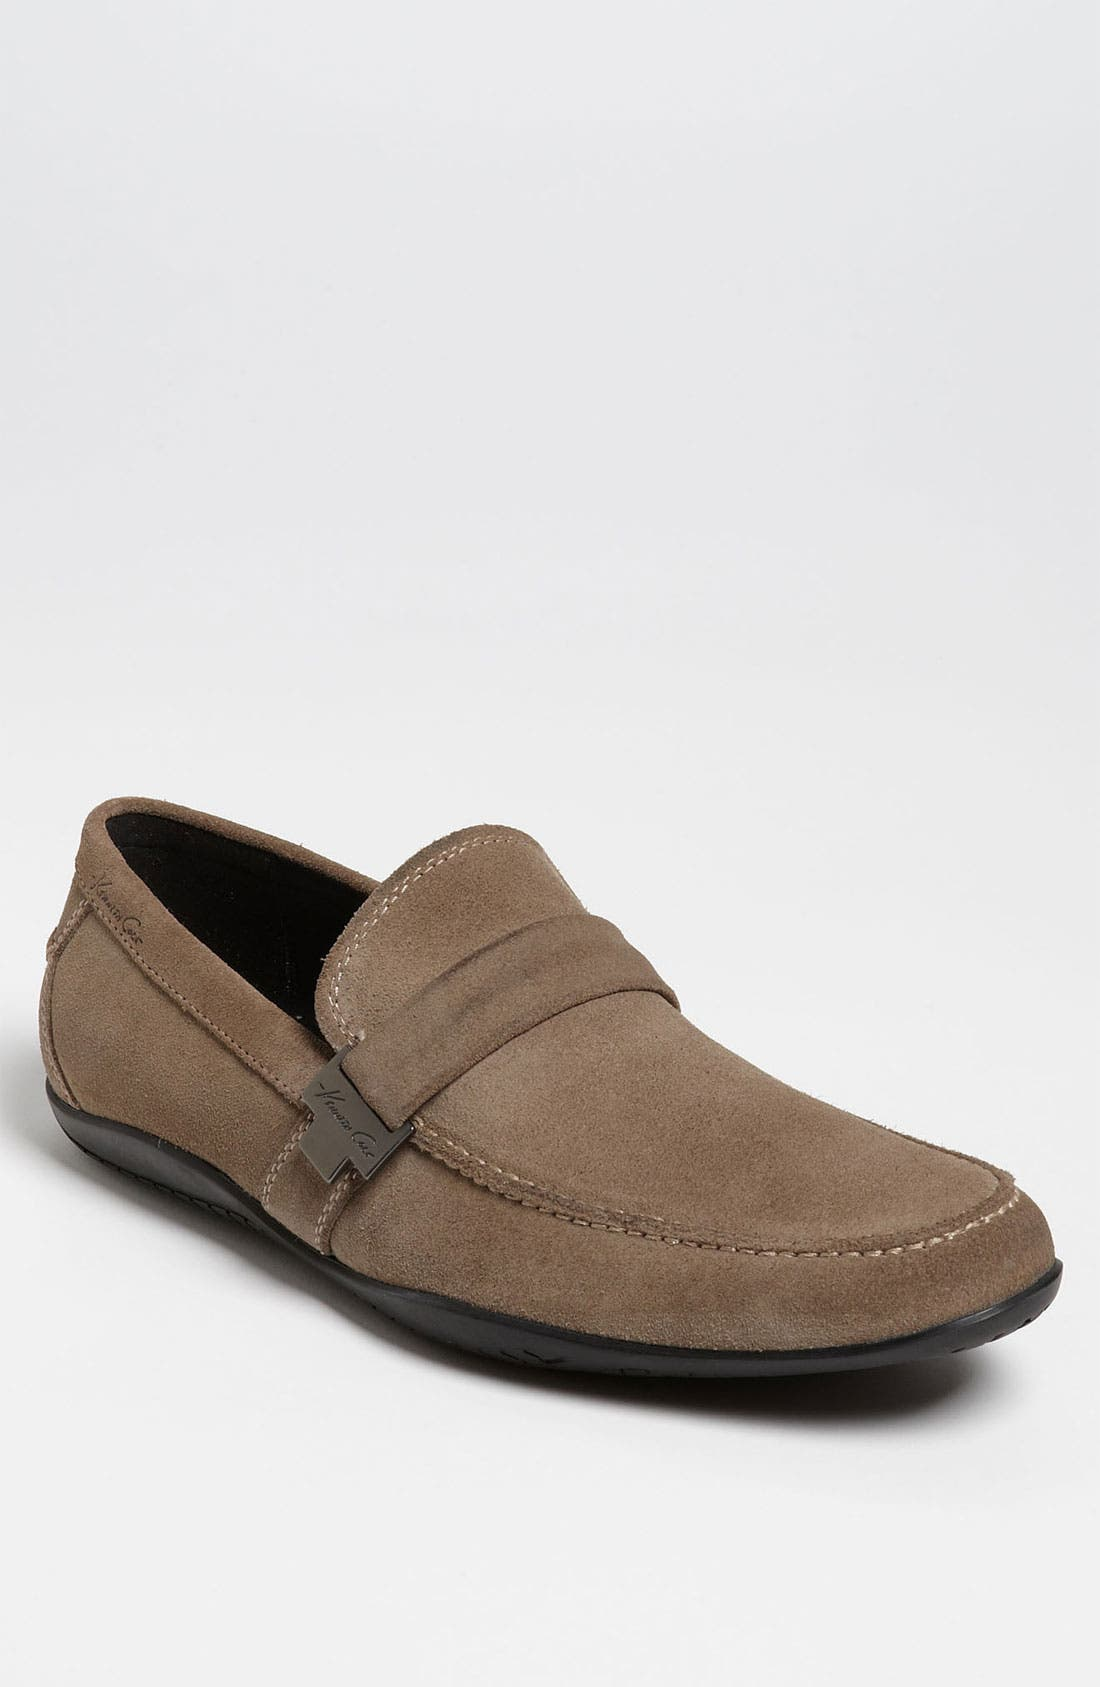 Main Image - Kenneth Cole New York 'Homeword Bound' Suede Loafer